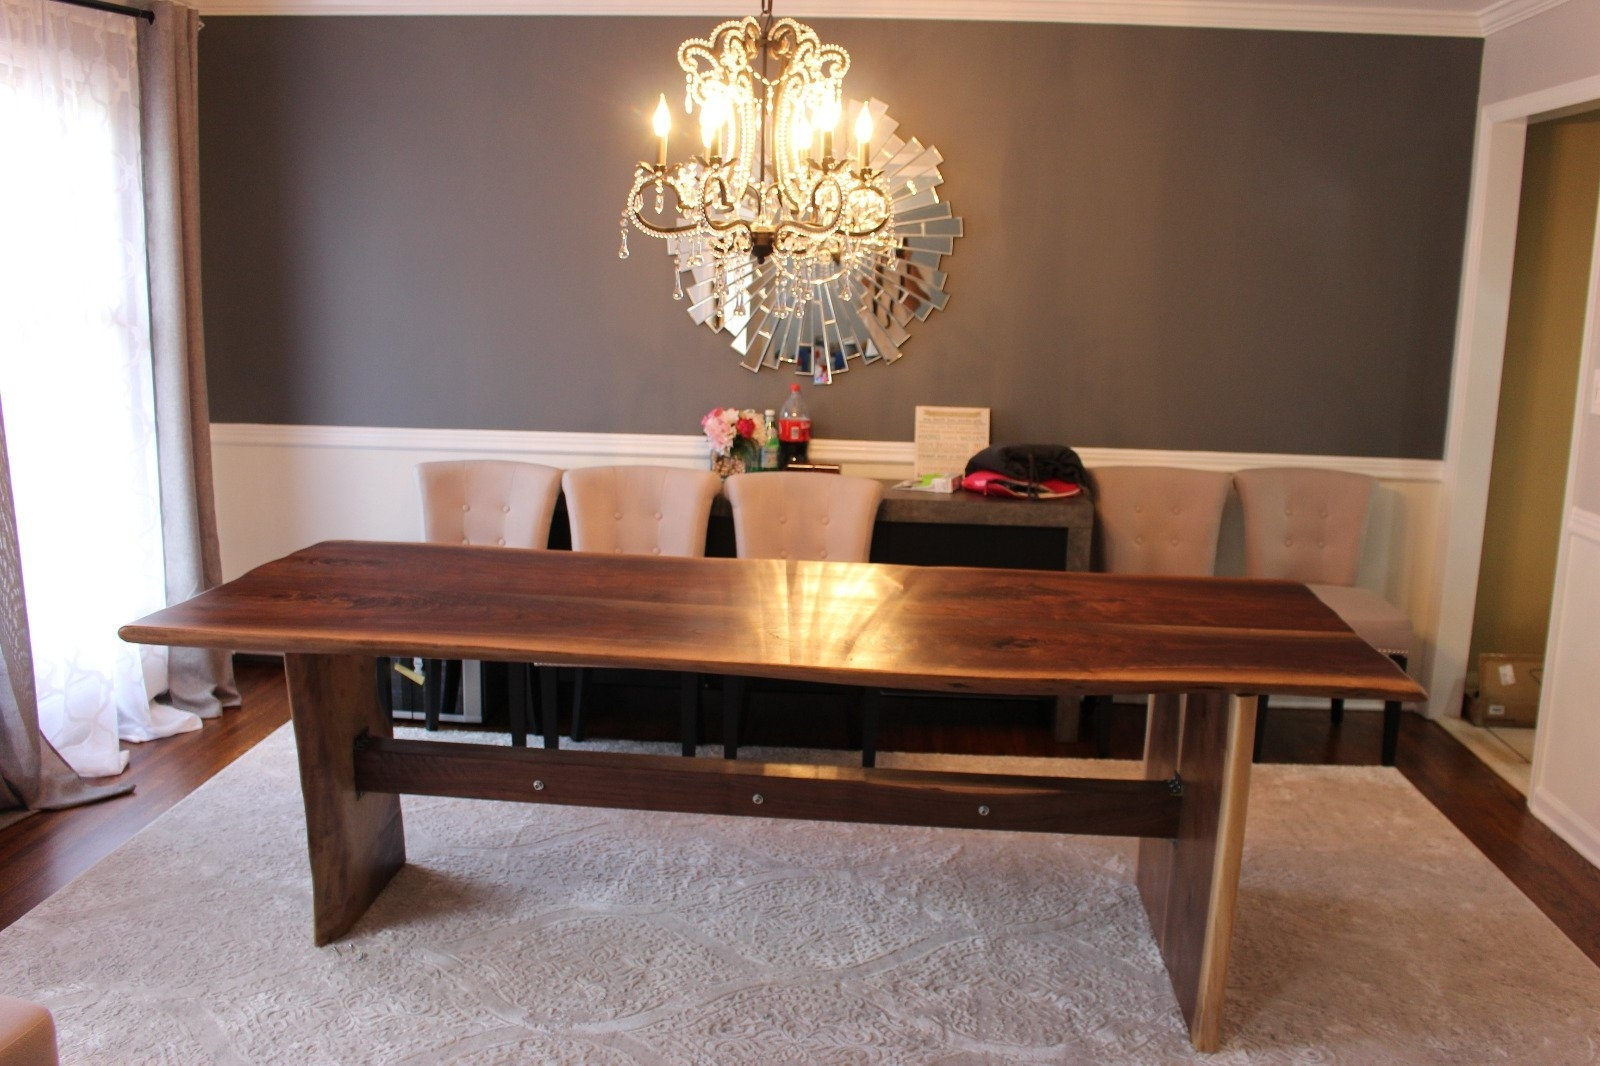 Custom Wood Dining Tables In New York Ny, New Jersey Nj, Long Island With Regard To Best And Newest Dining Tables New York (View 12 of 25)